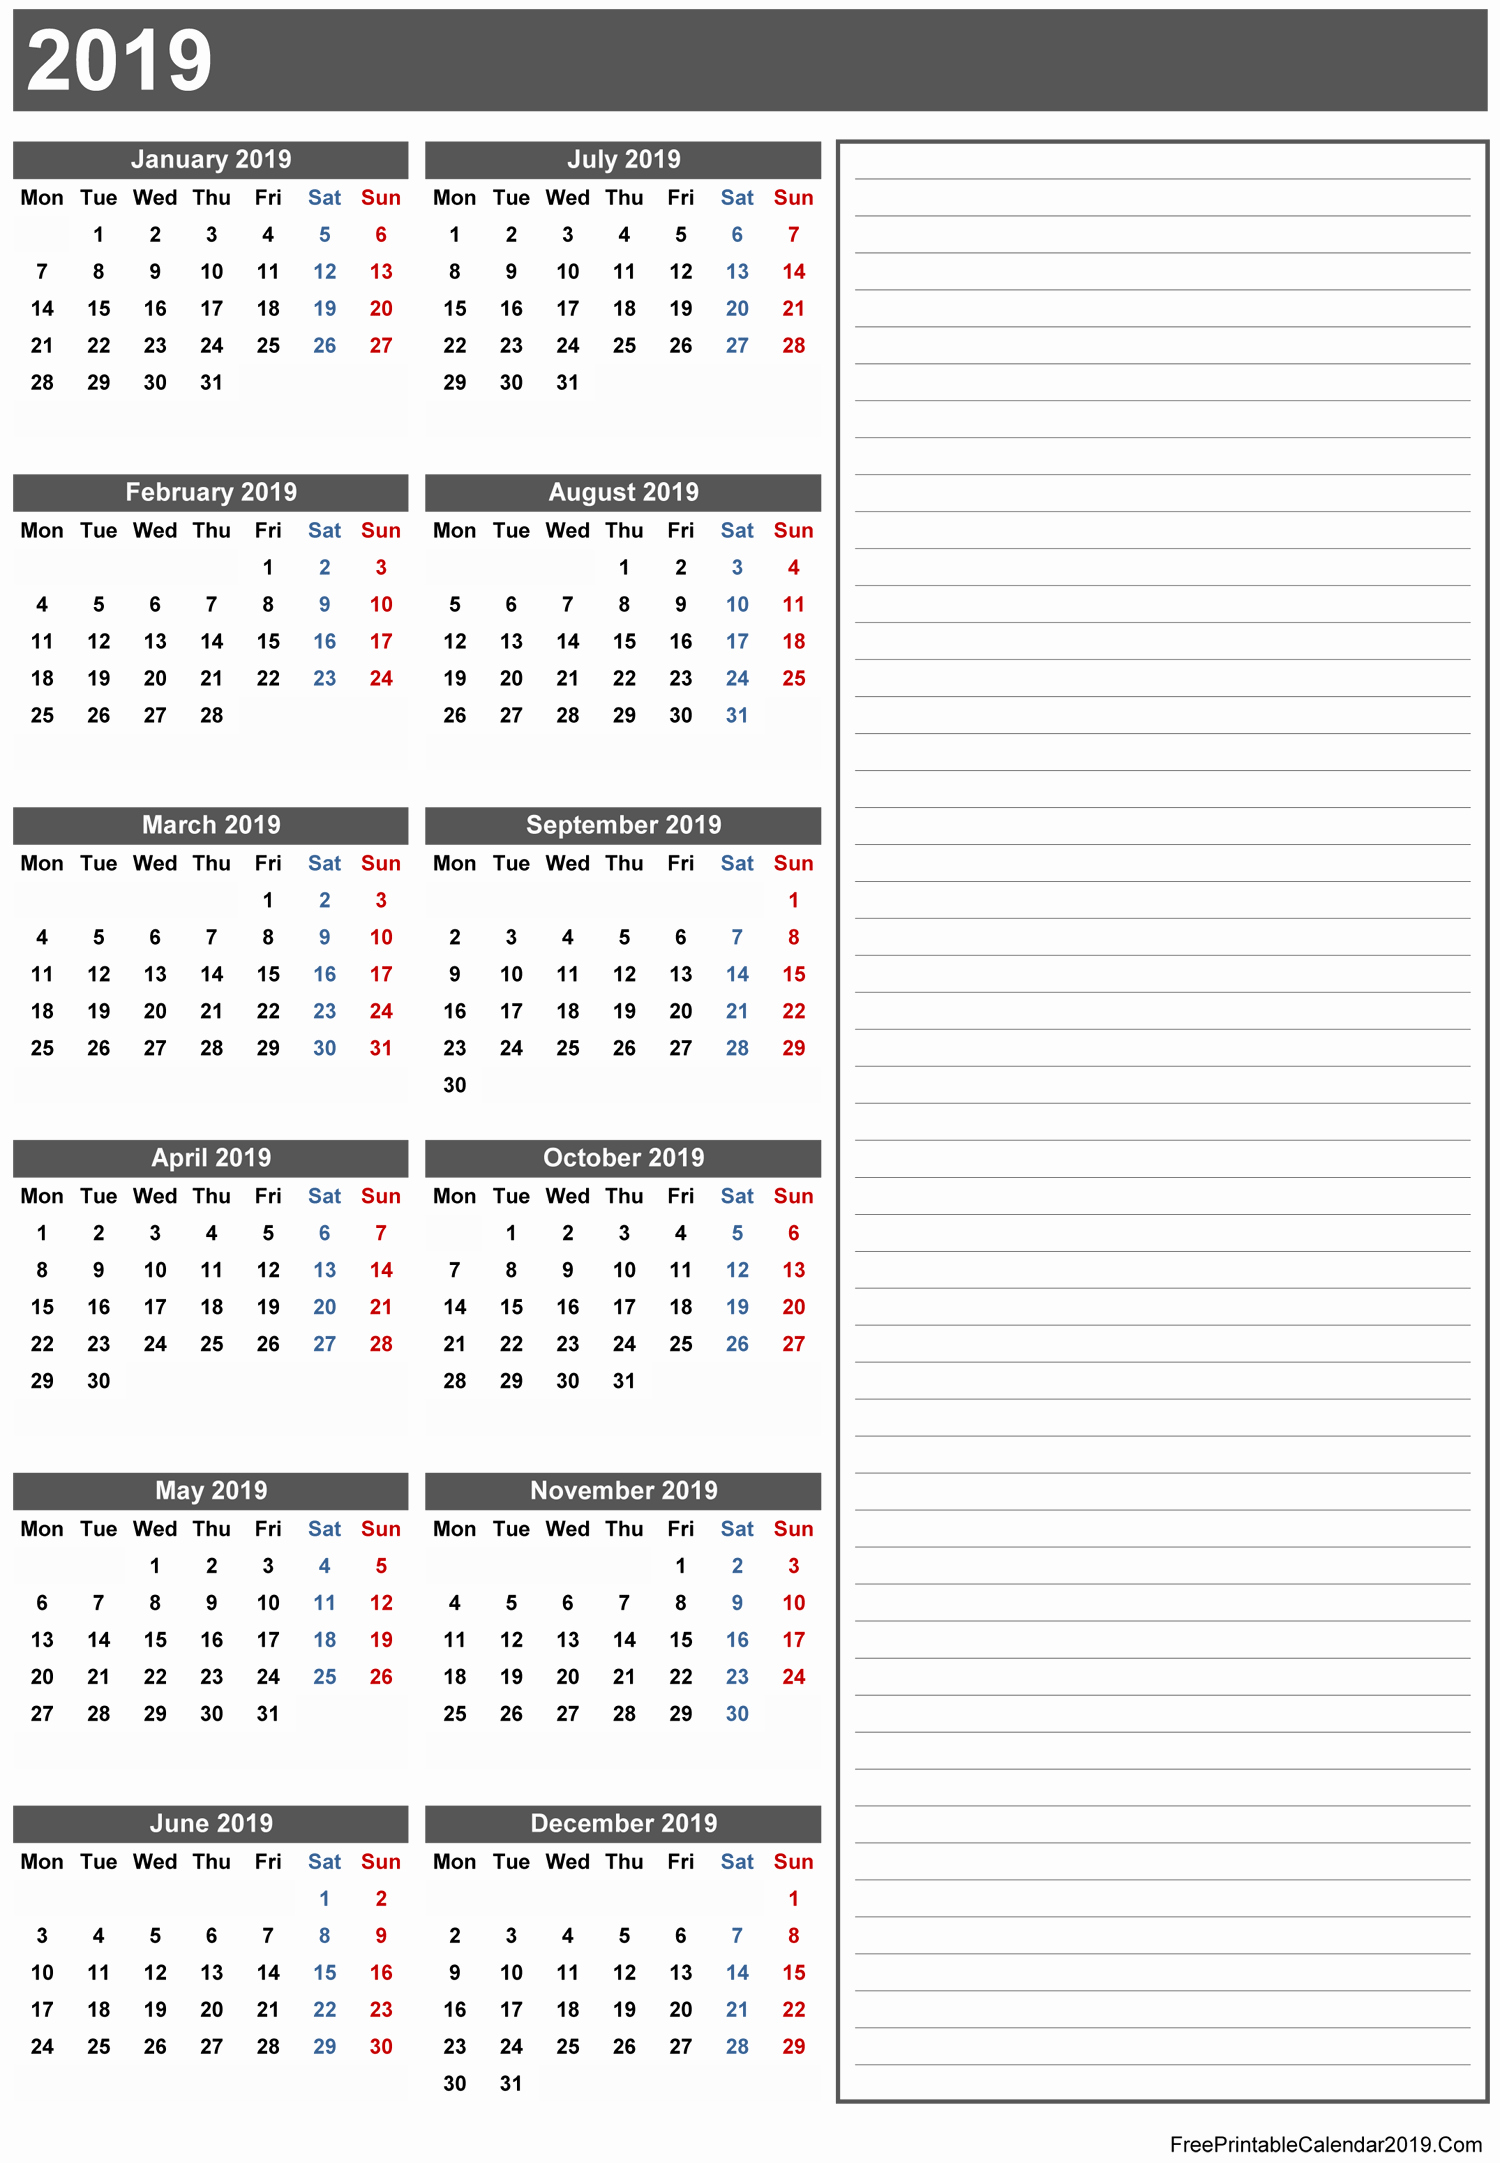 2019 Yearly Calendar with Holidays Inspirational Free Printable Calendar 2019 with Holidays In Word Excel Pdf